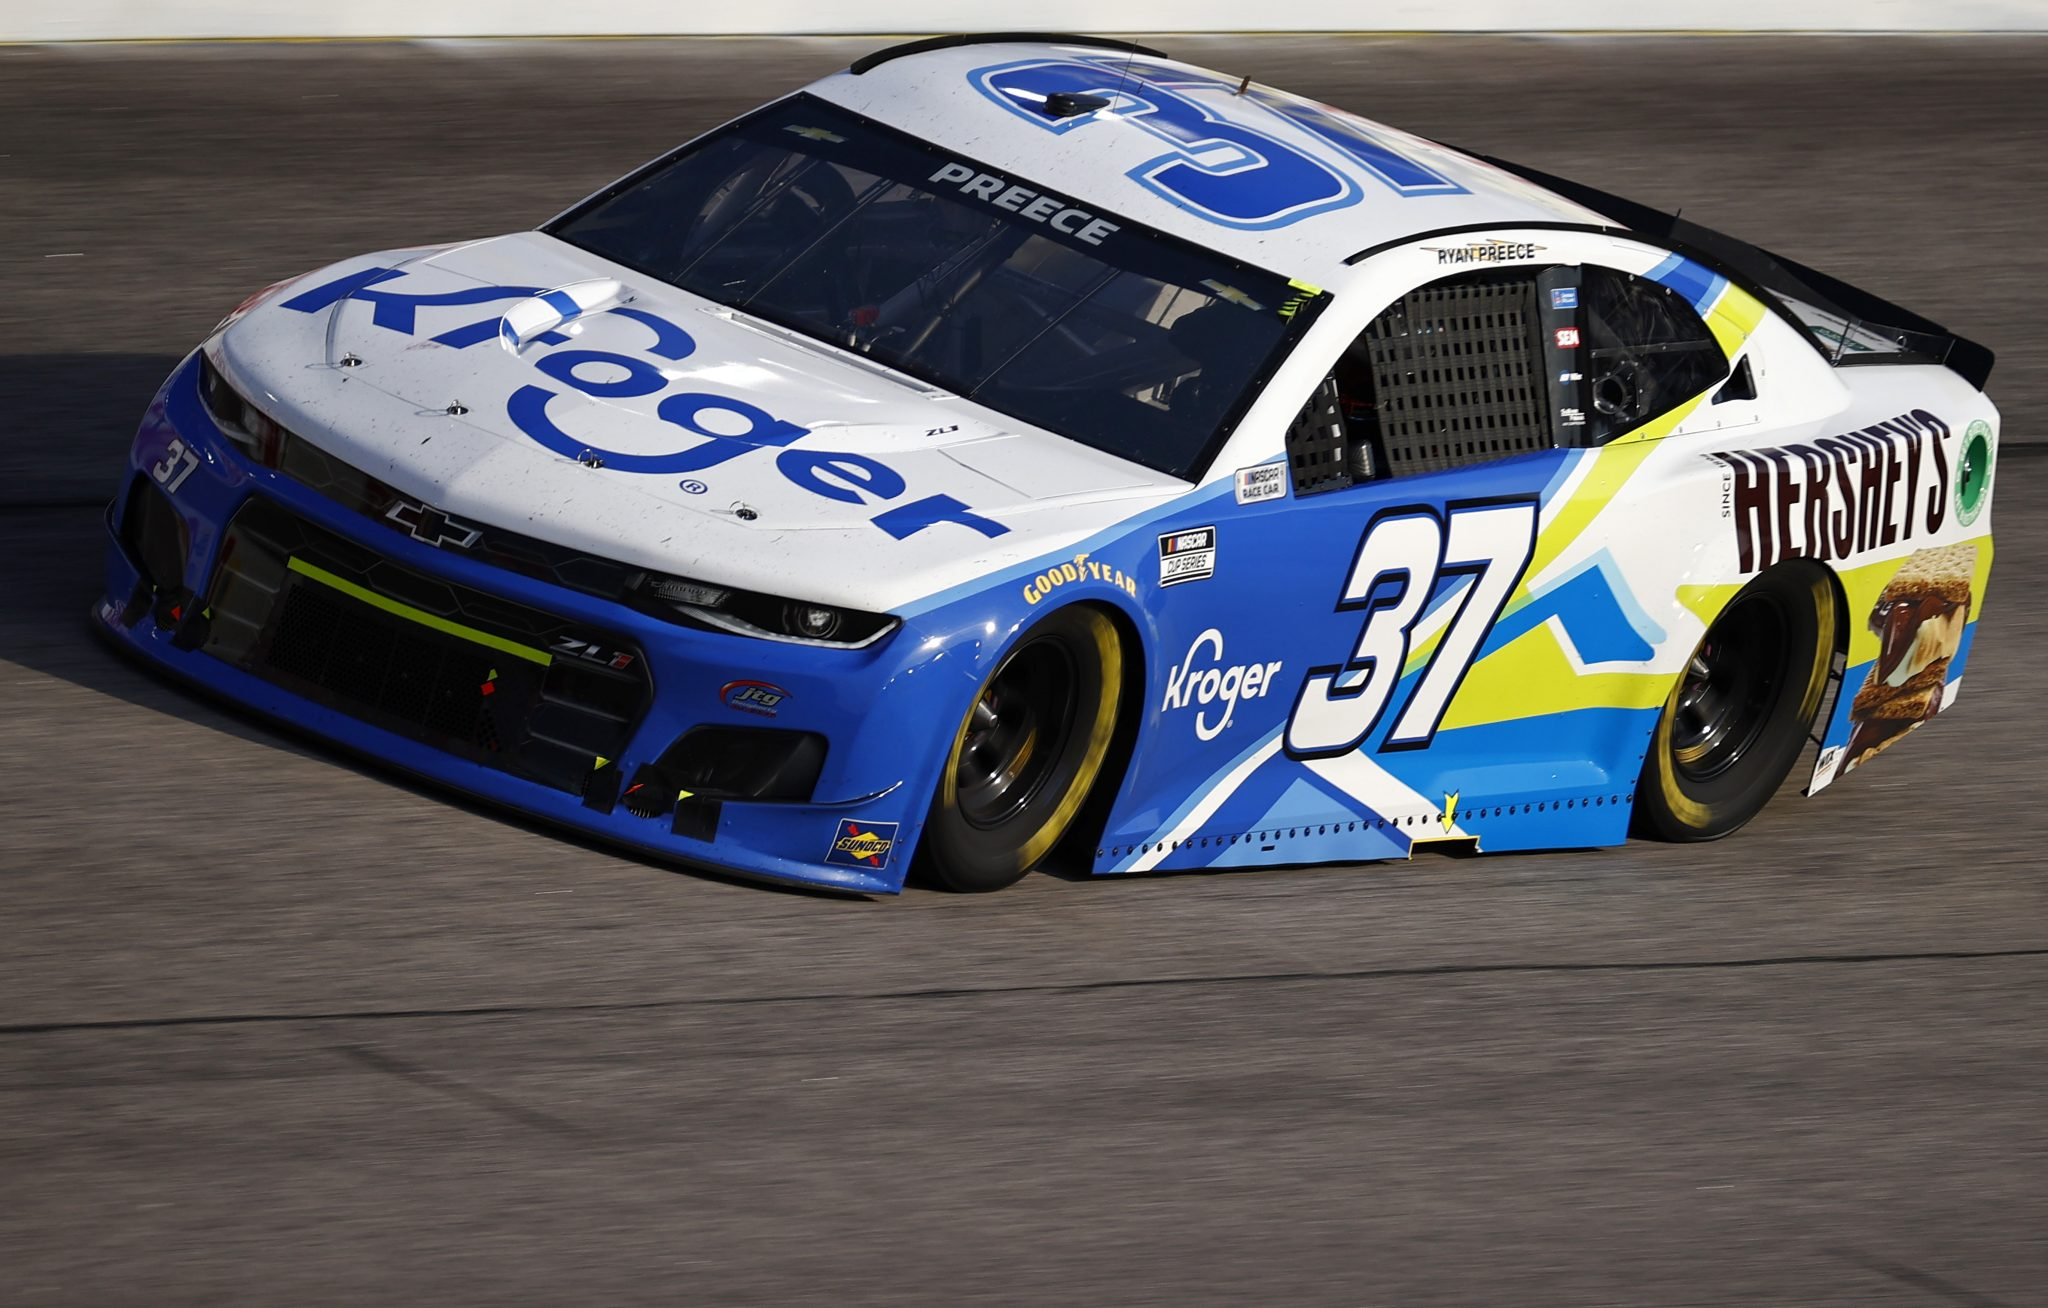 DARLINGTON, SOUTH CAROLINA - SEPTEMBER 05: Ryan Preece, driver of the #37 Kroger/Hershey's S'mores Chevrolet, drives during the NASCAR Cup Series Cook Out Southern 500 at Darlington Raceway on September 05, 2021 in Darlington, South Carolina. (Photo by Jared C. Tilton/Getty Images) | Getty Images